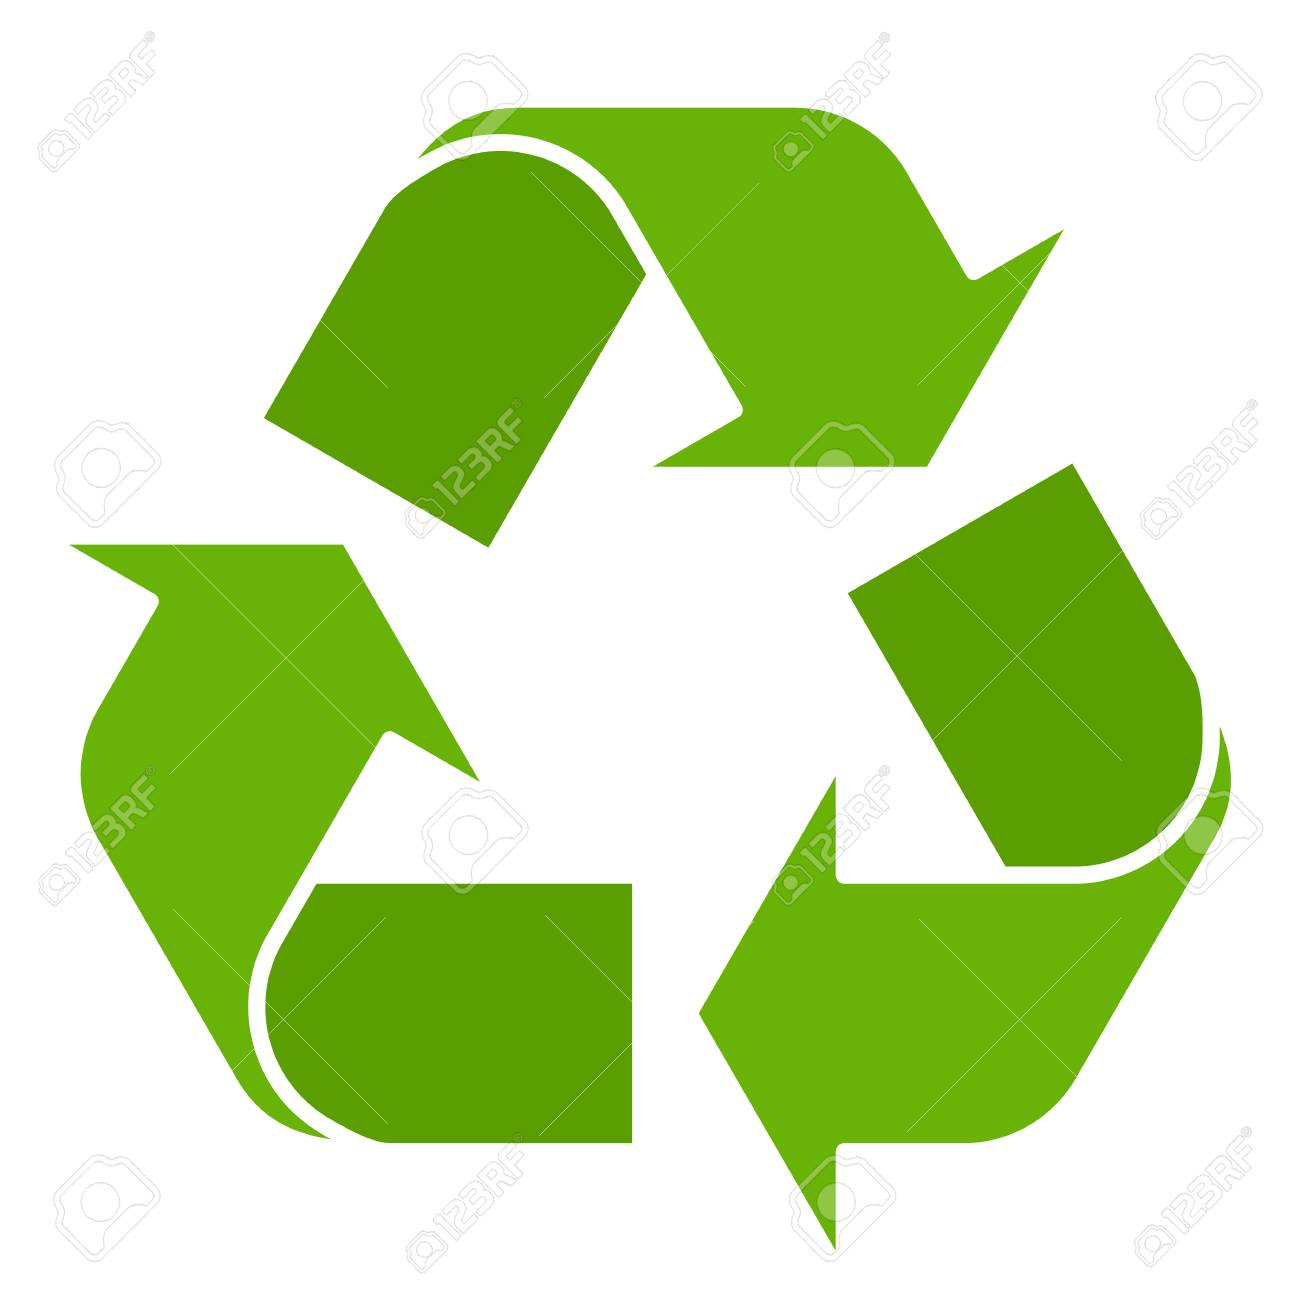 Vector illustration of green recycle symbol isolated on white background. Recycling sign in flat style. - 91755007